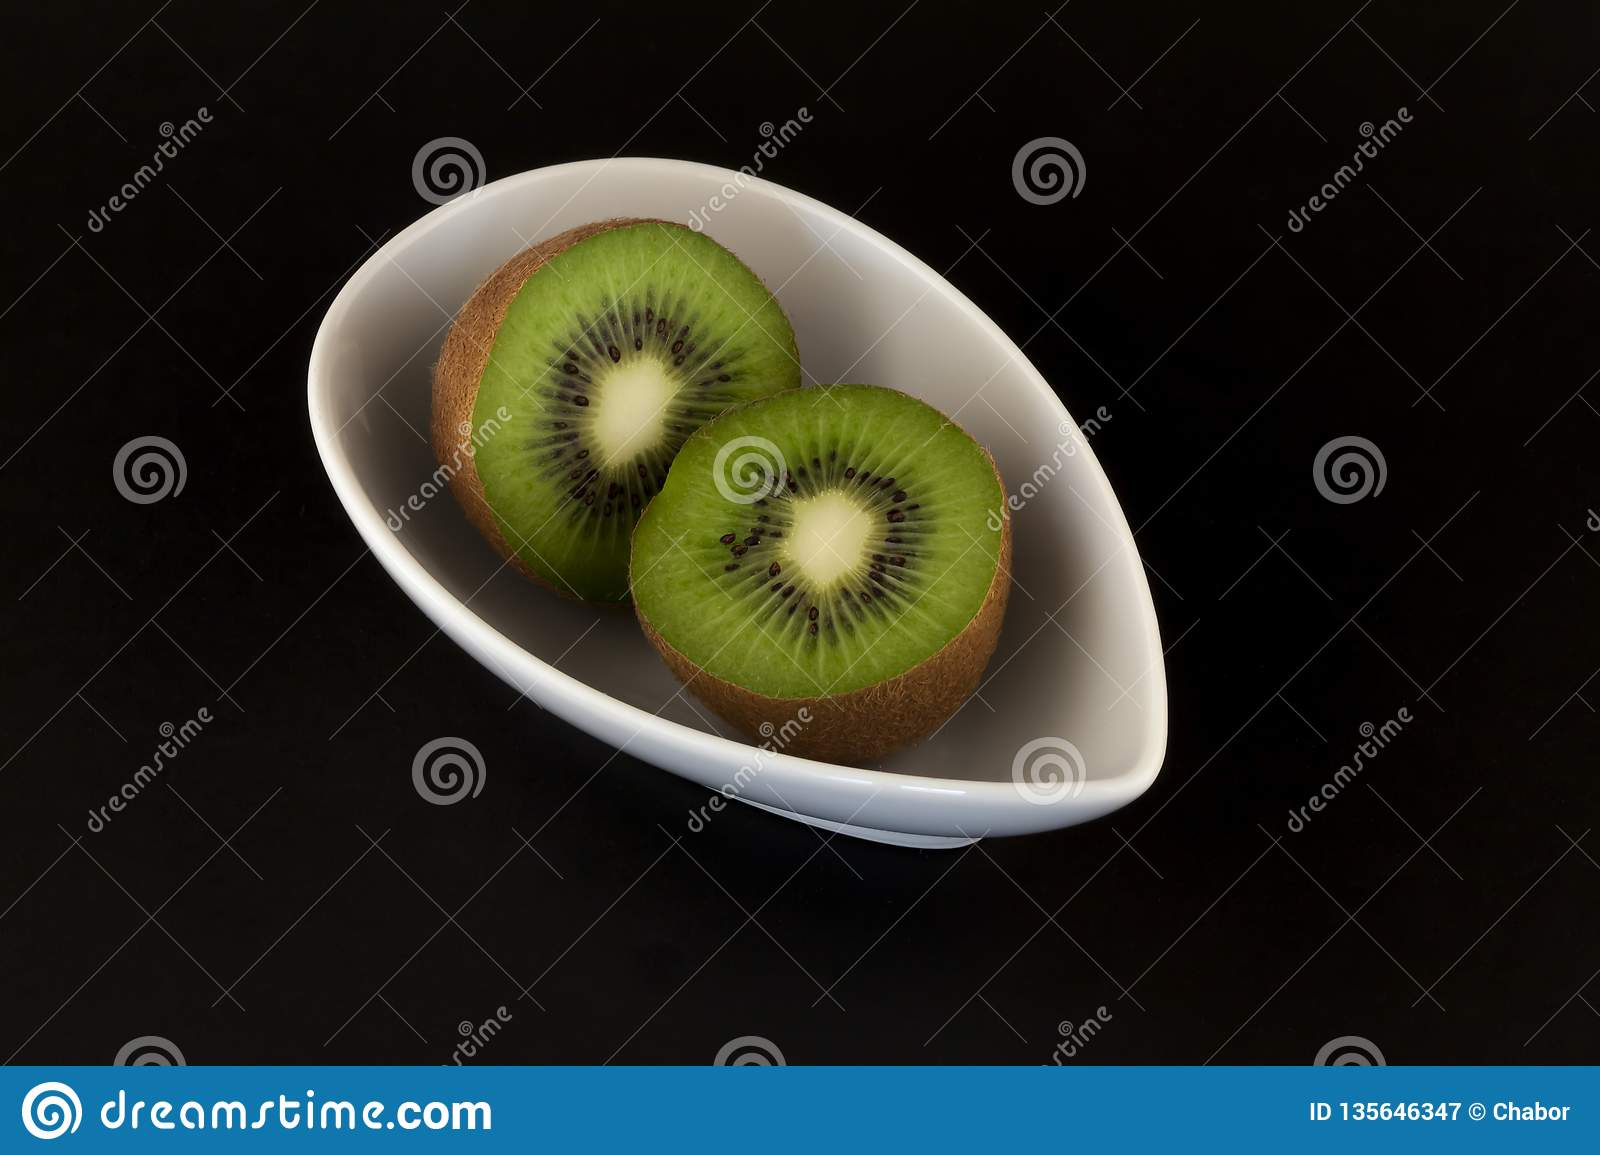 Kiwis in white bowl on black background